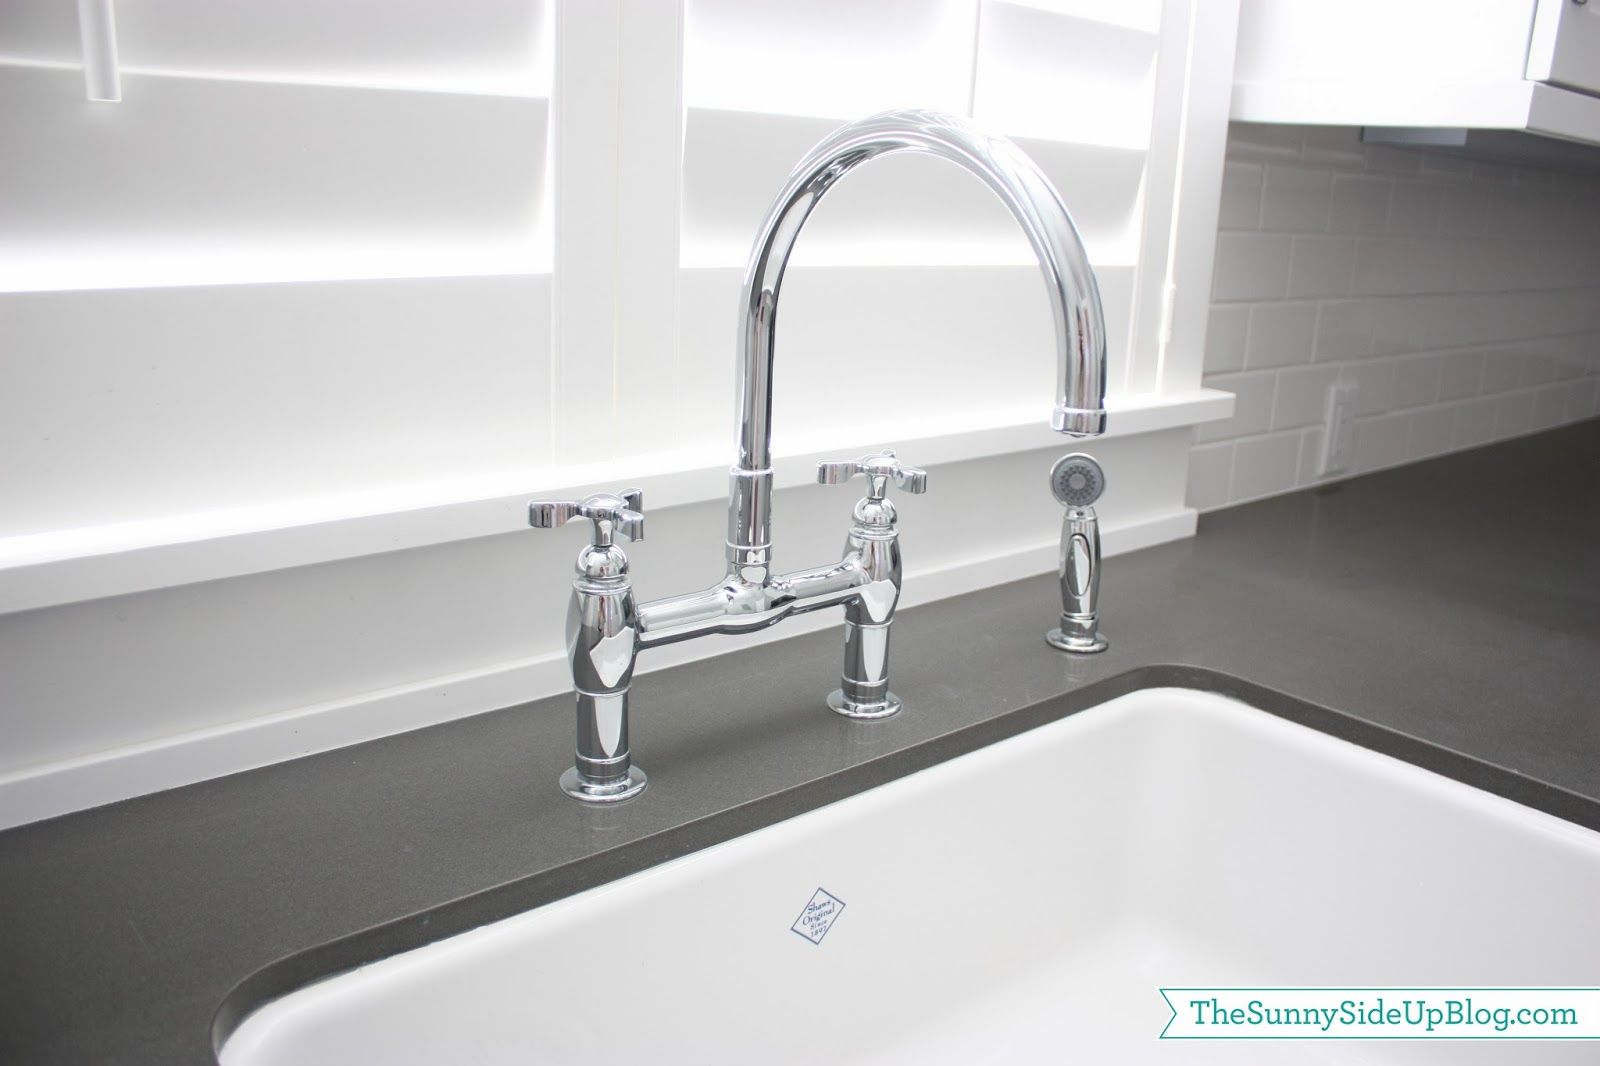 Utility Room Faucets : Pin by Jamie Lynn on Ready Made House Dreaming Pinterest